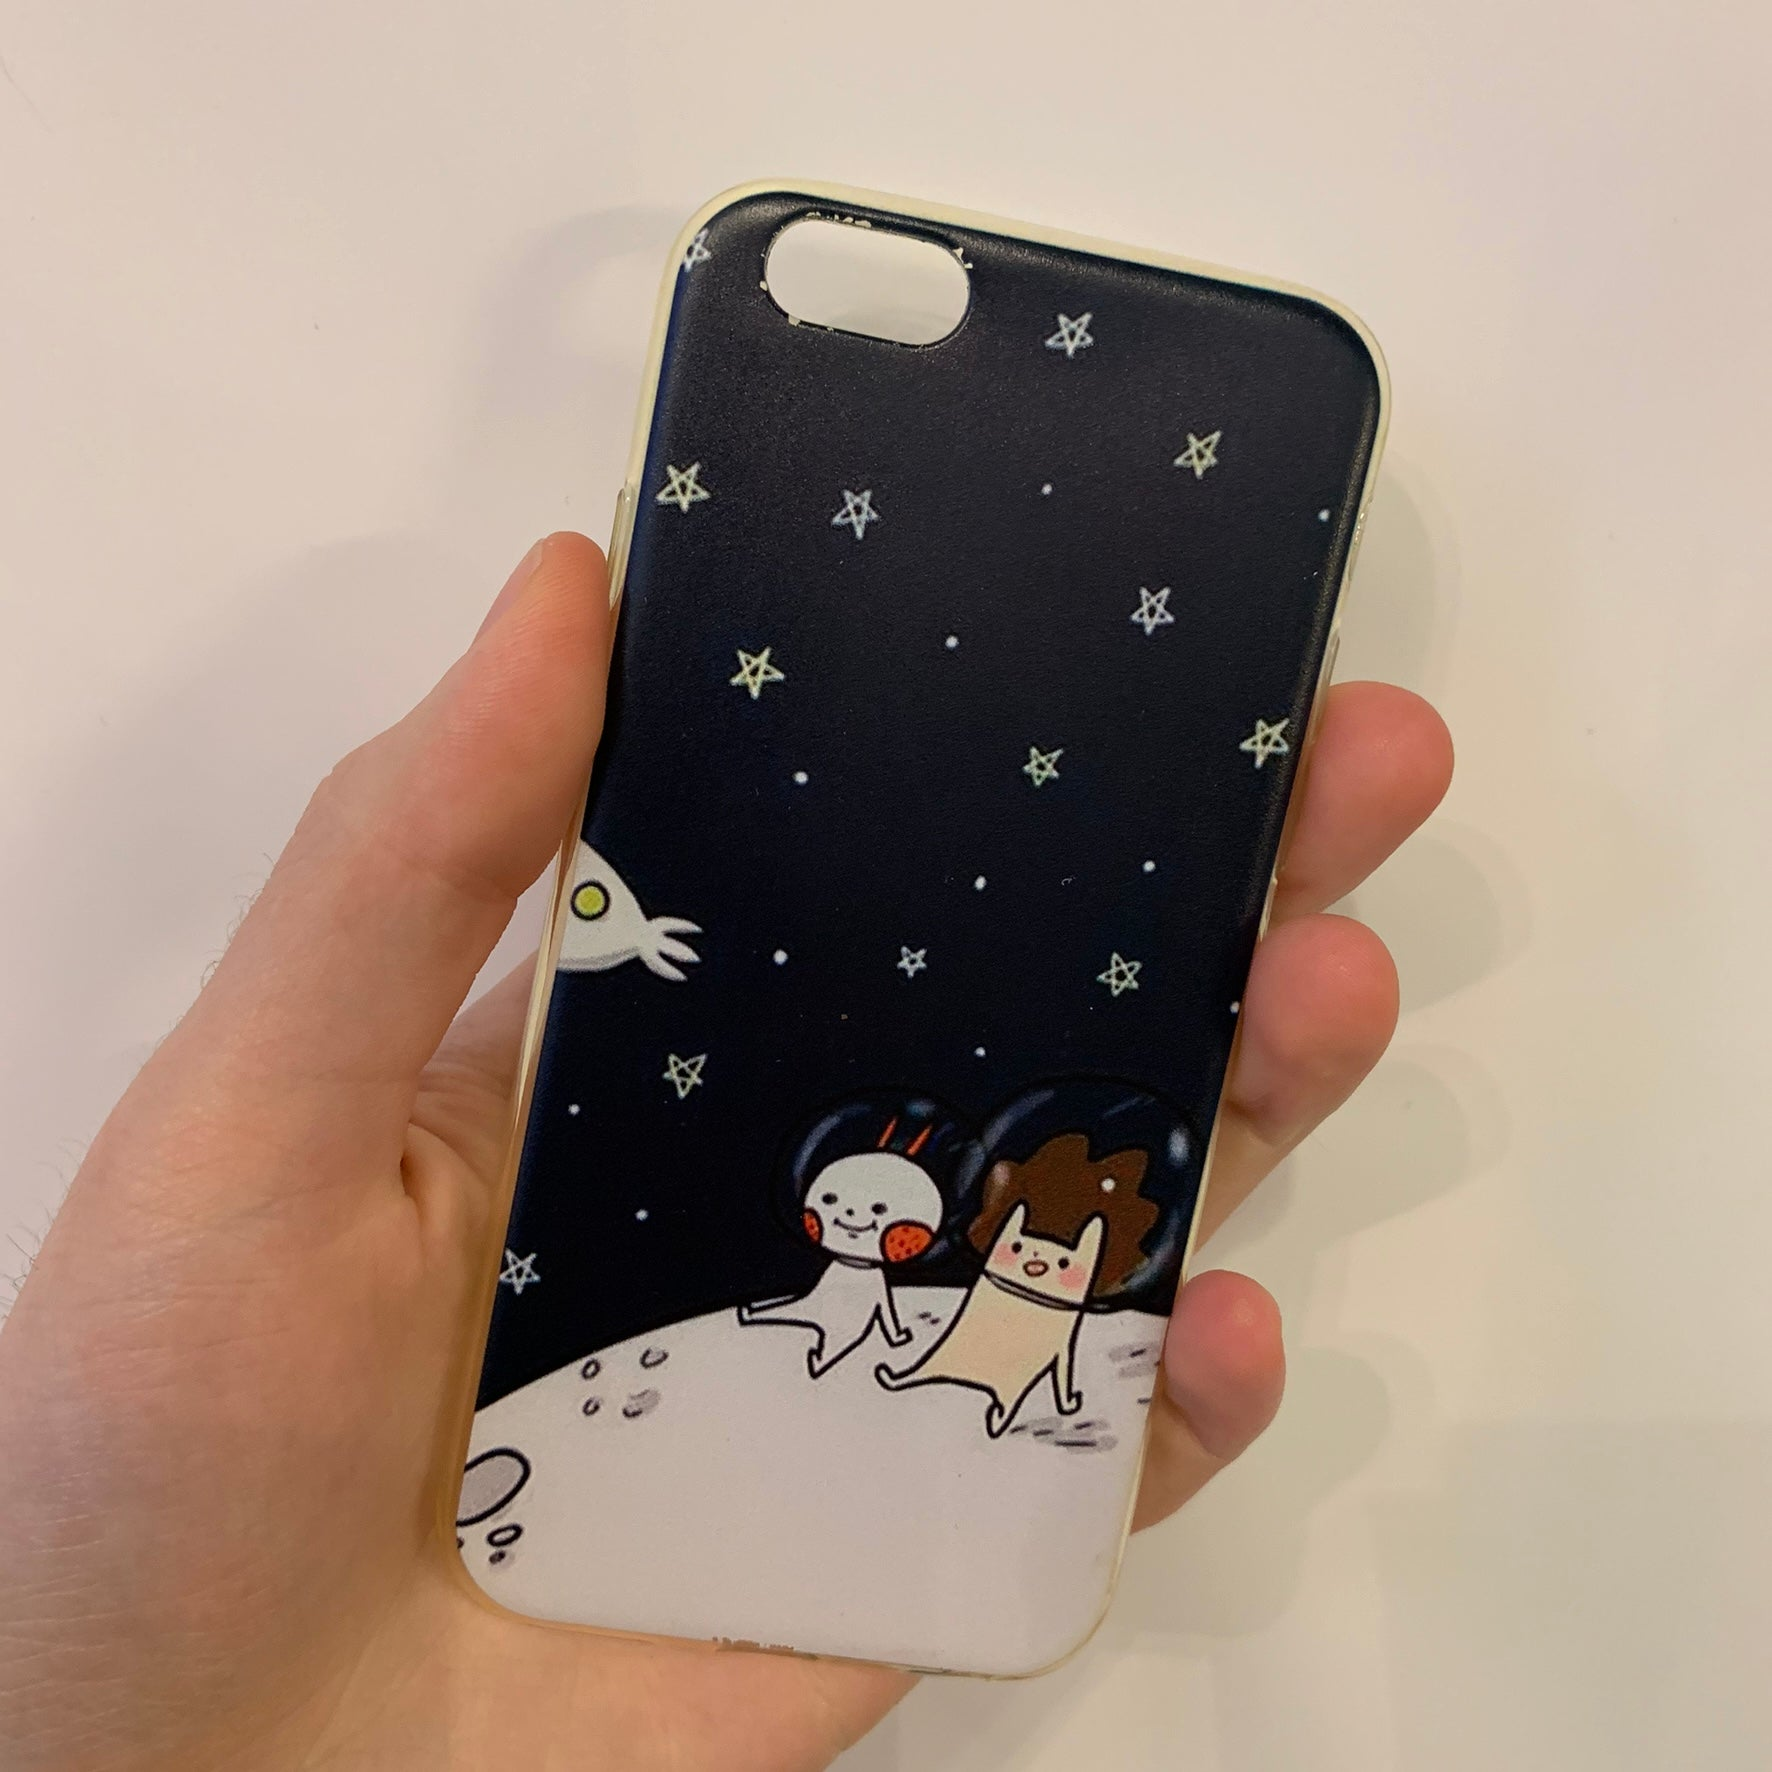 05 iPhone 6/6s Illustrated Case